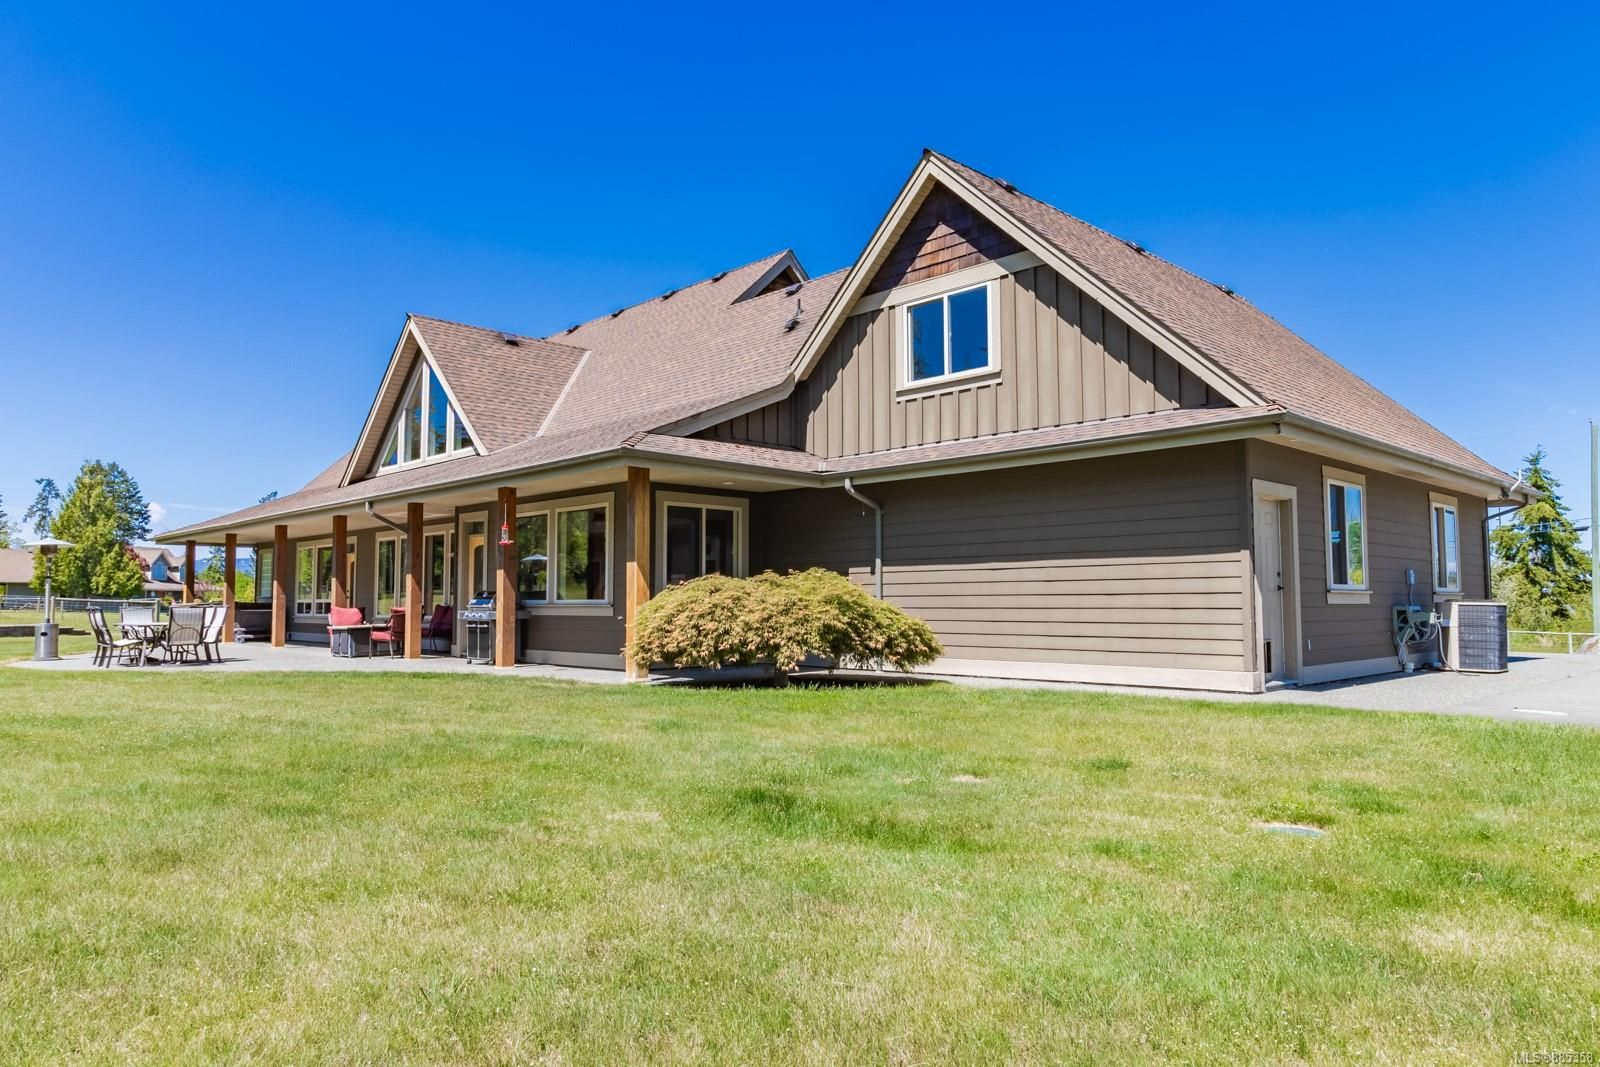 Photo 49: Photos: 2850 Peters Rd in : PQ Qualicum Beach House for sale (Parksville/Qualicum)  : MLS®# 885358